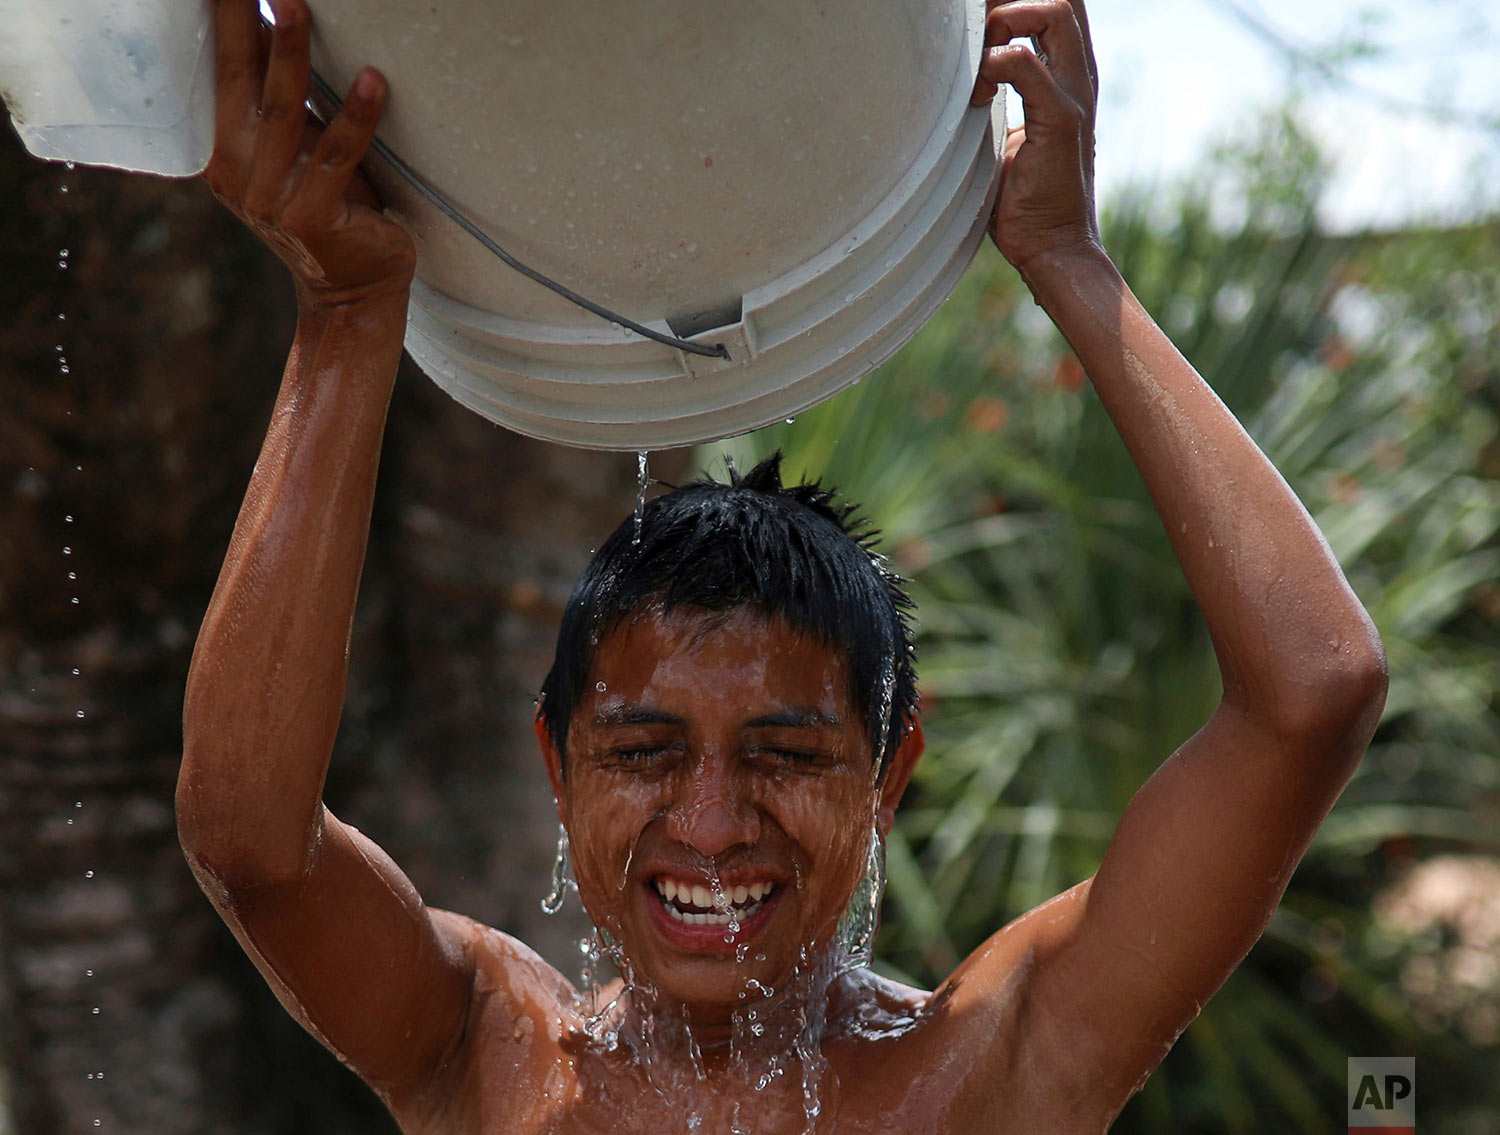 A Central American migrant participating in the Migrant Stations of the Cross caravan takes a bucket bath during the caravan's stop at a sports club in Matias Romero, Oaxaca State, Mexico, Tuesday, April 3, 2018. (AP Photo/Felix Marquez)